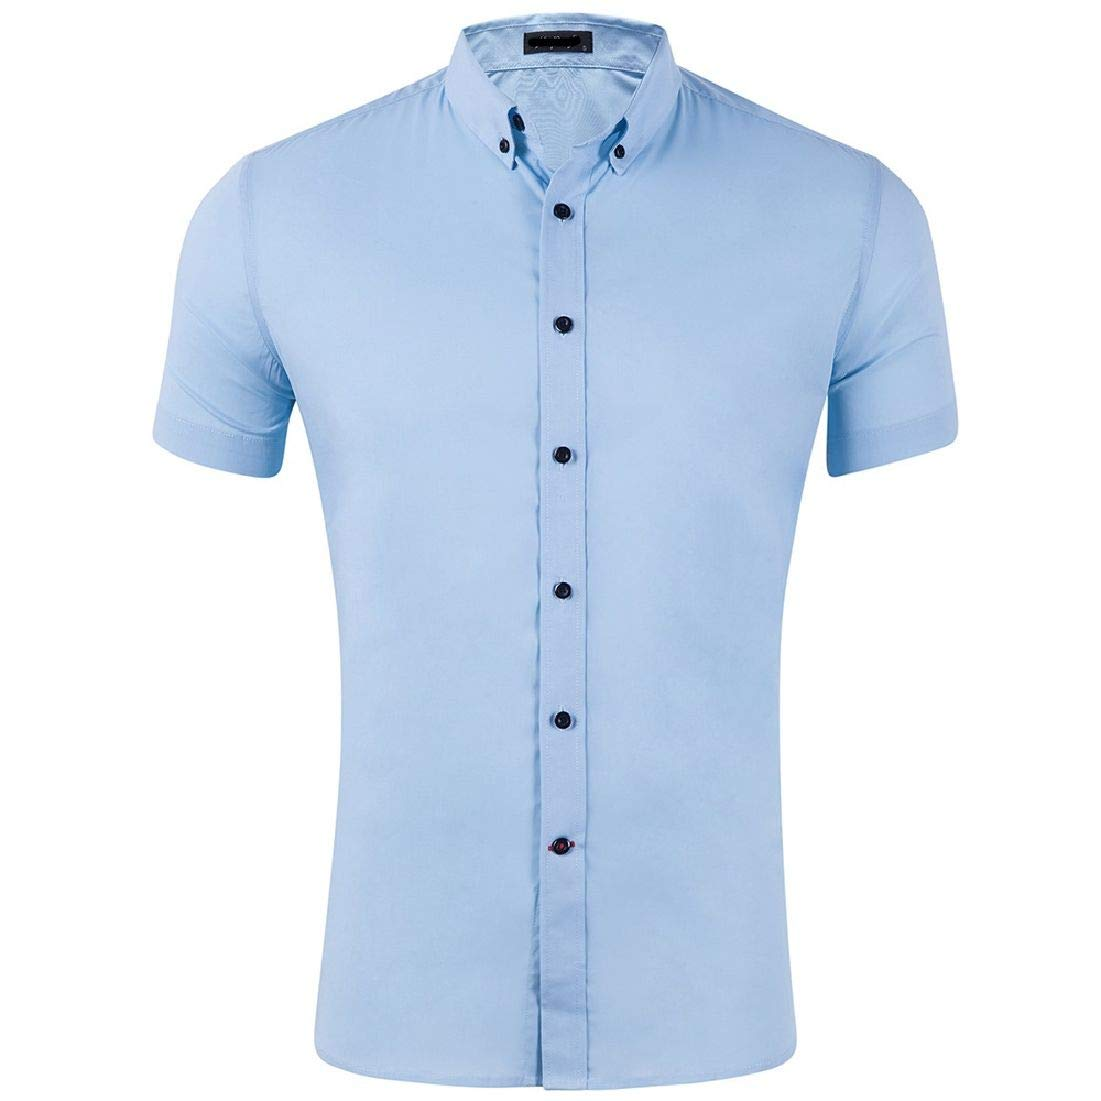 Domple Mens Button Down Wrinkle-Free Casual Short Sleeve Casual Dress Shirt